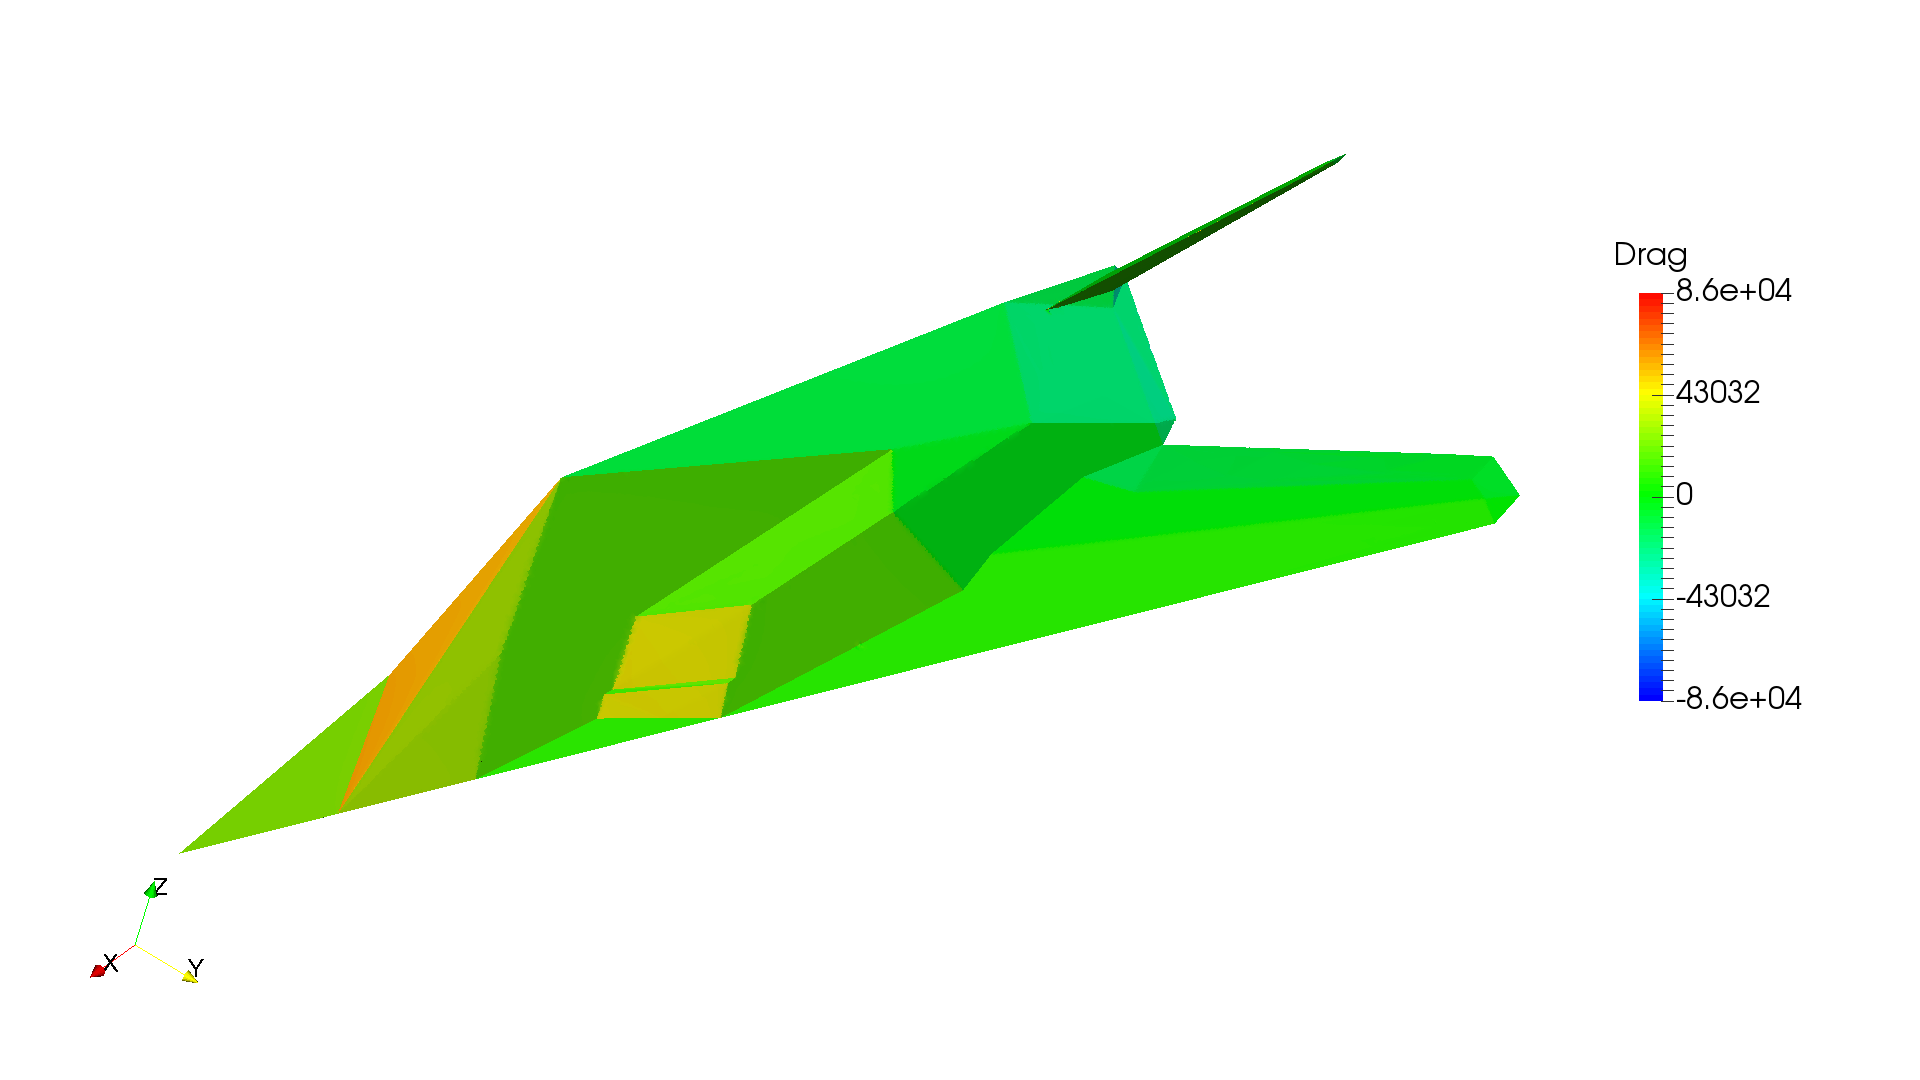 Aerodynamics Analysis Of An F 117 Bomber Simulation Project By Engine Diagram Drag21920x1080 573 Kb